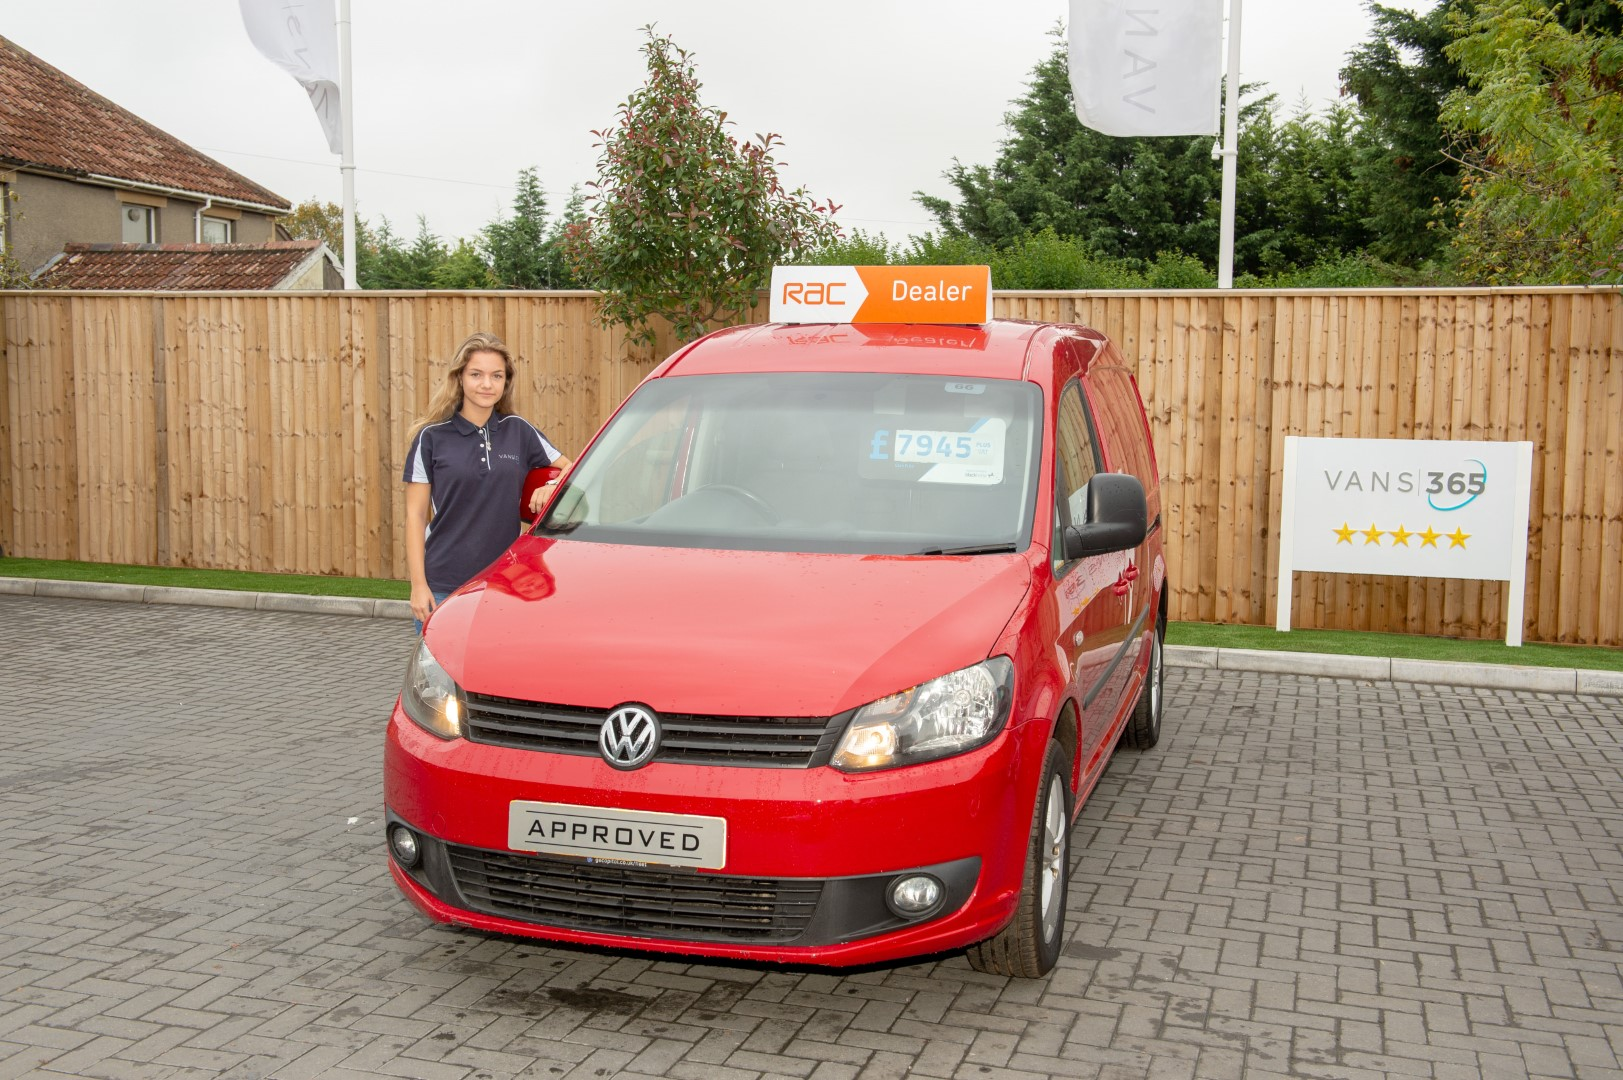 Member of the vans 365 team stood next to a red VW Caddy for sales with a RAC warranty